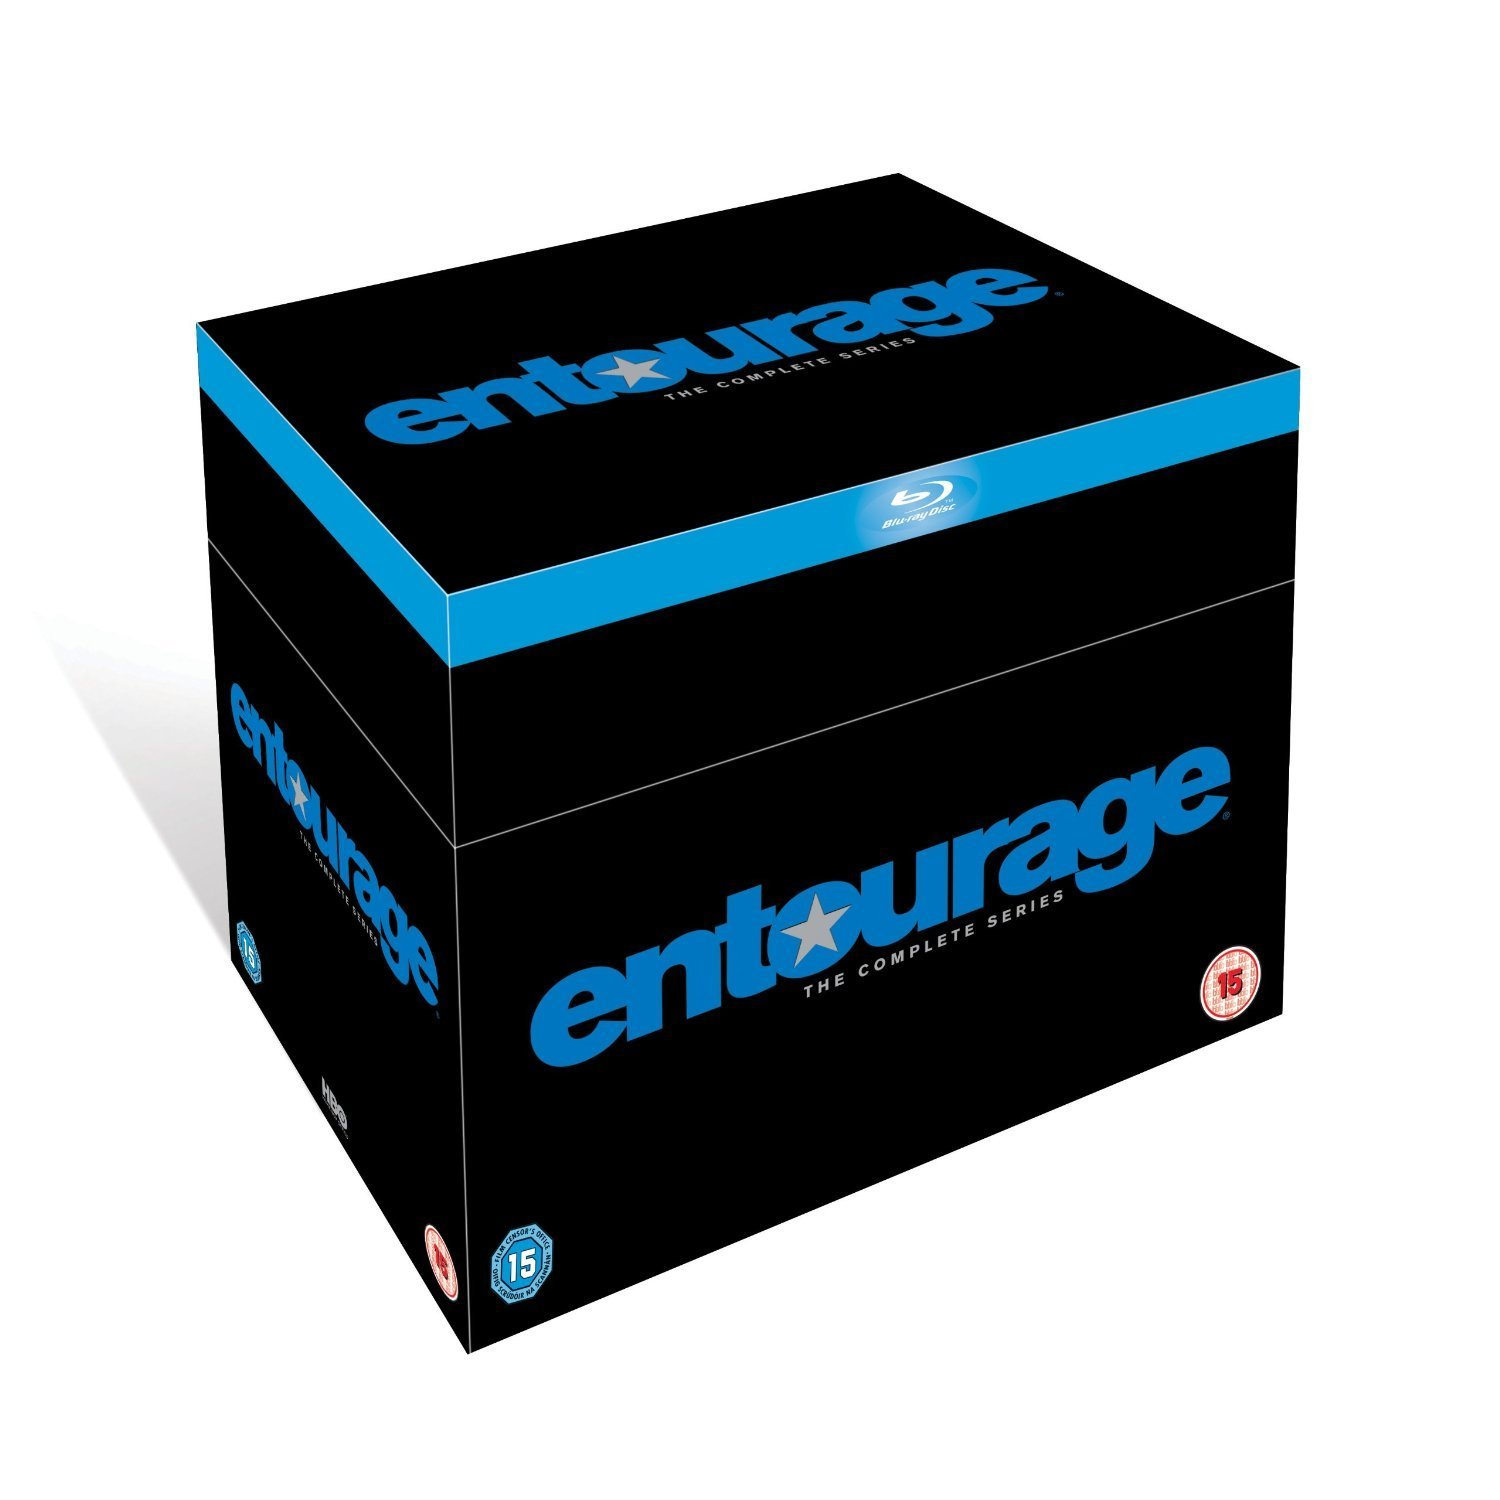 : Entourage s01 s08 complete german dubbed ac3 720p BDRiP x264 scene